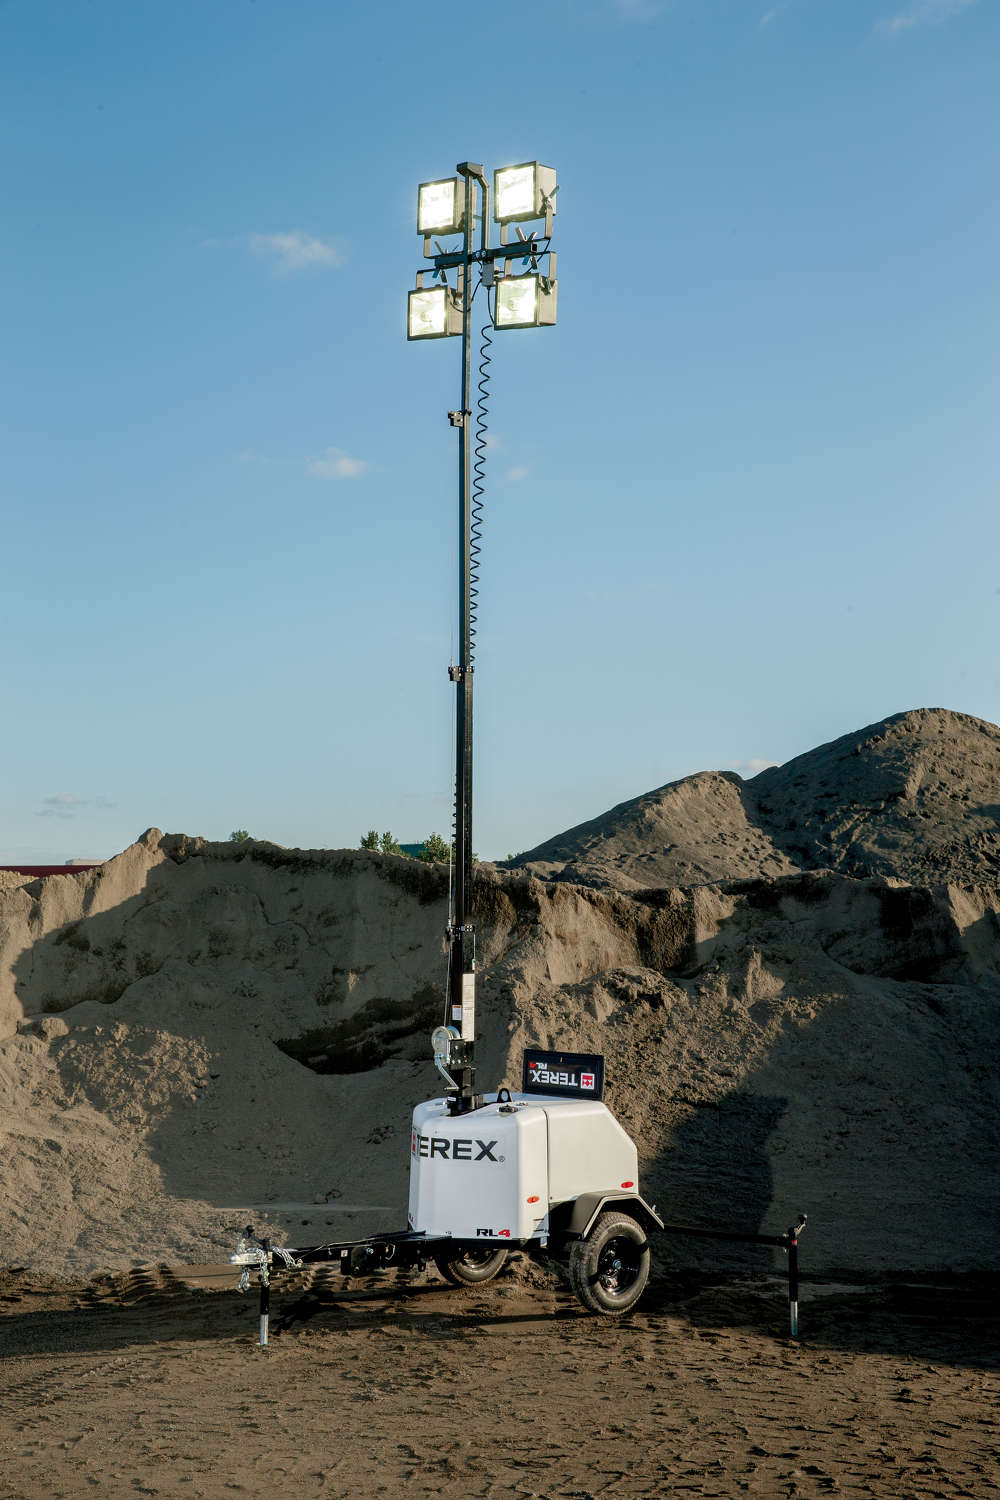 Its 359 degree non-continuous tower rotation allows for pinpoint light positioning and the compact size of the RL4 enables transportation of up to 17 units per 48 ft. (14.6 m) trailer.